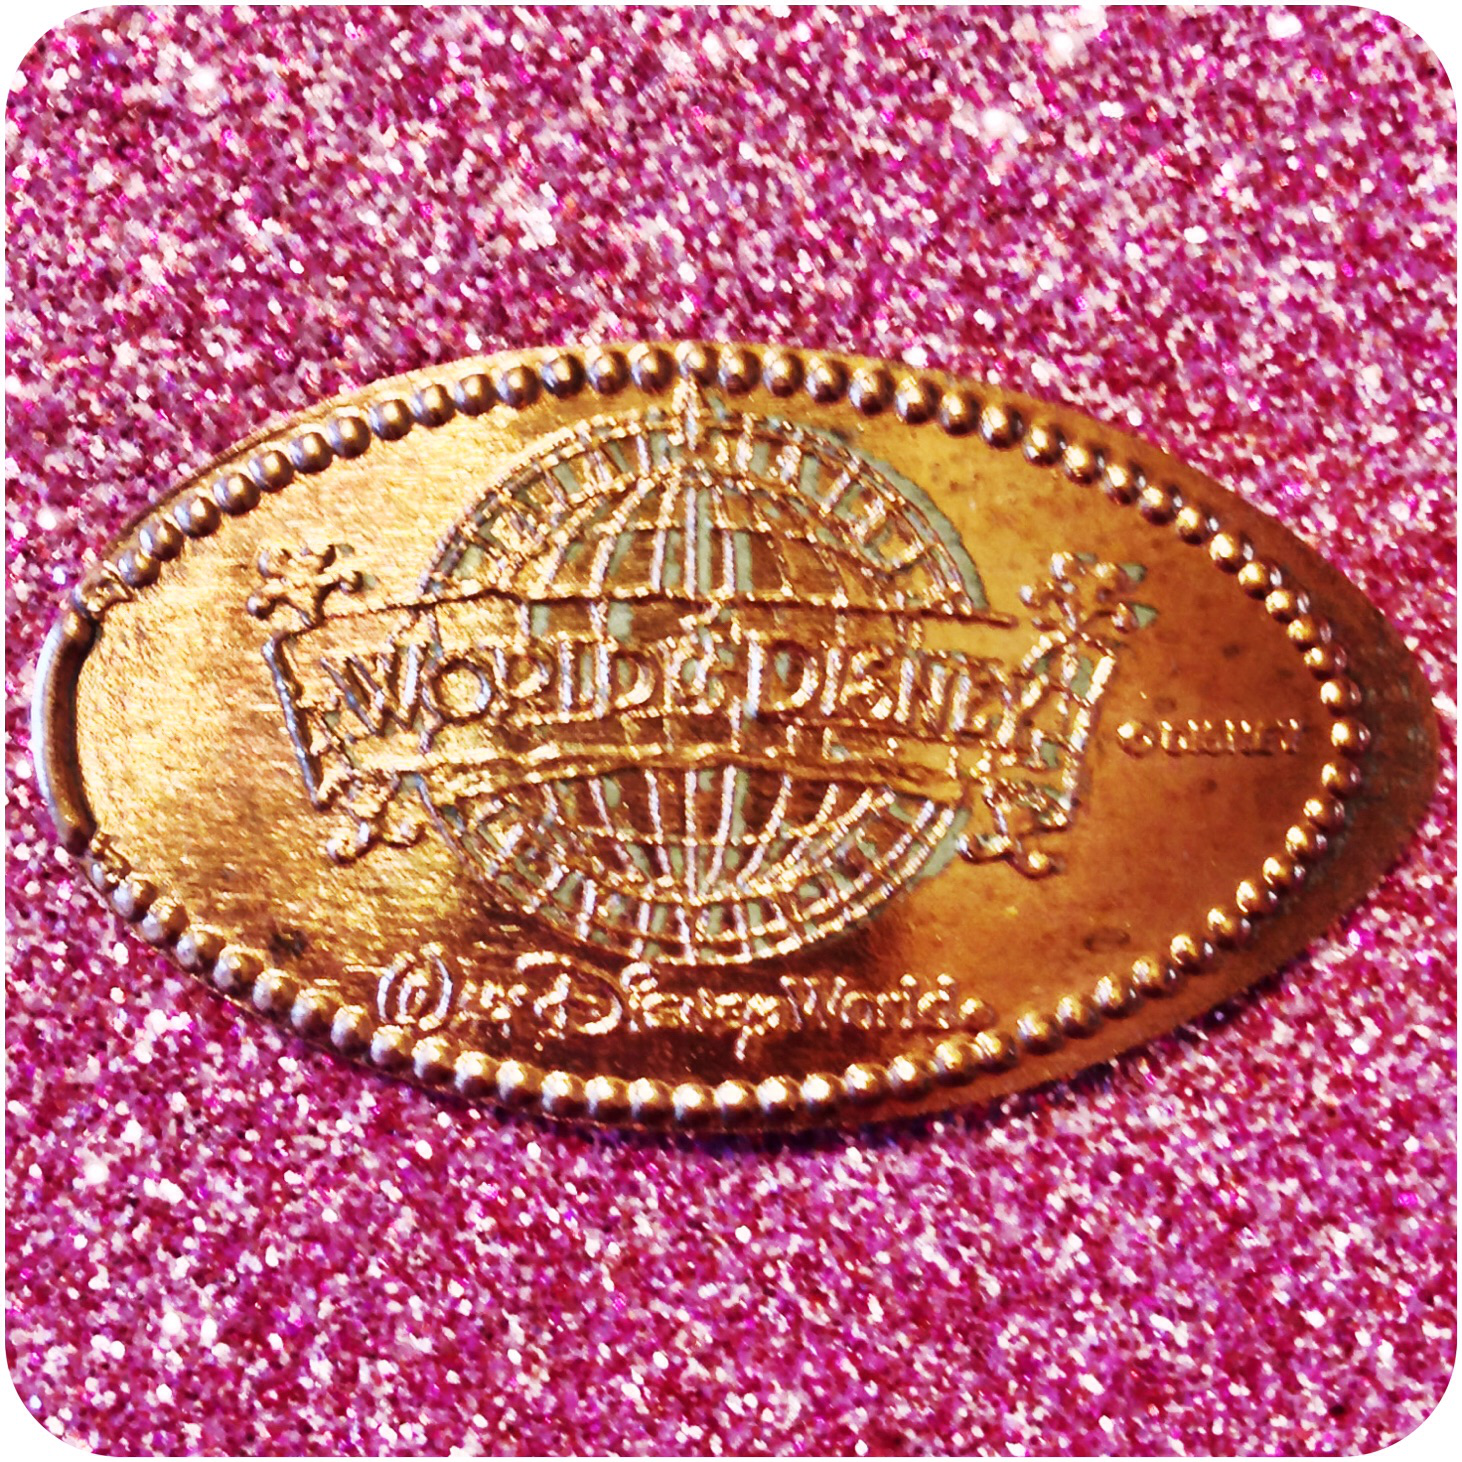 World of Disney Logo, DTD0029, Downtown Disney, Walt Disney World, Florida Penny